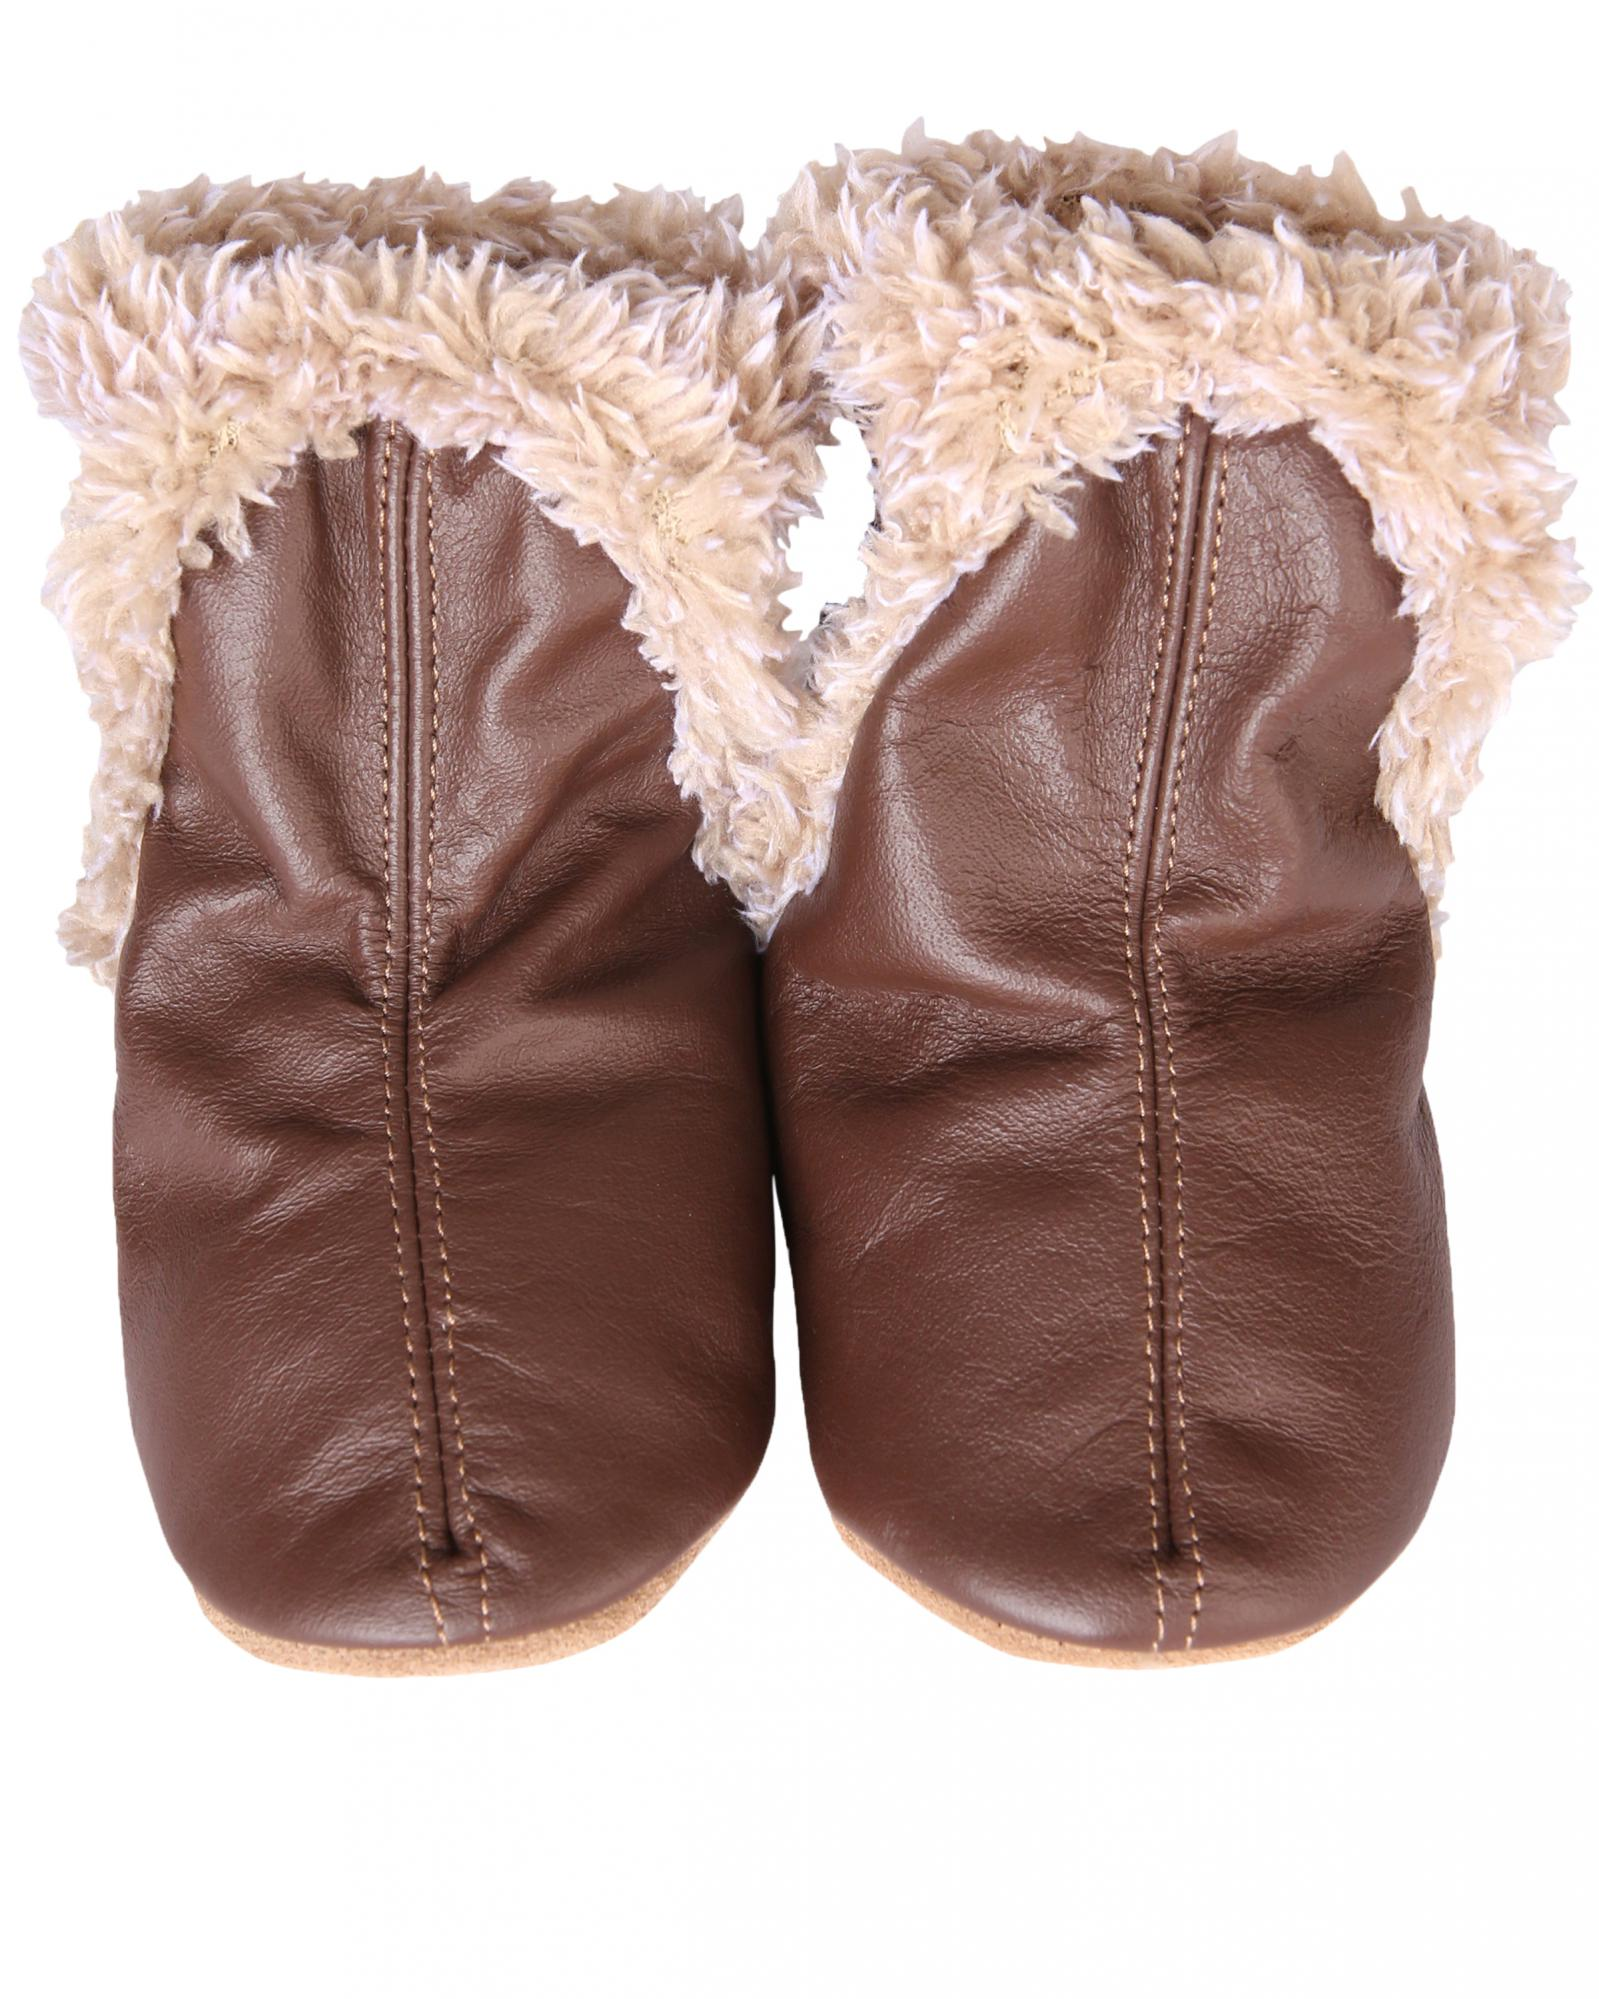 robeez-soft-sole-baby-shoes-classic-bootie-brown.jpg